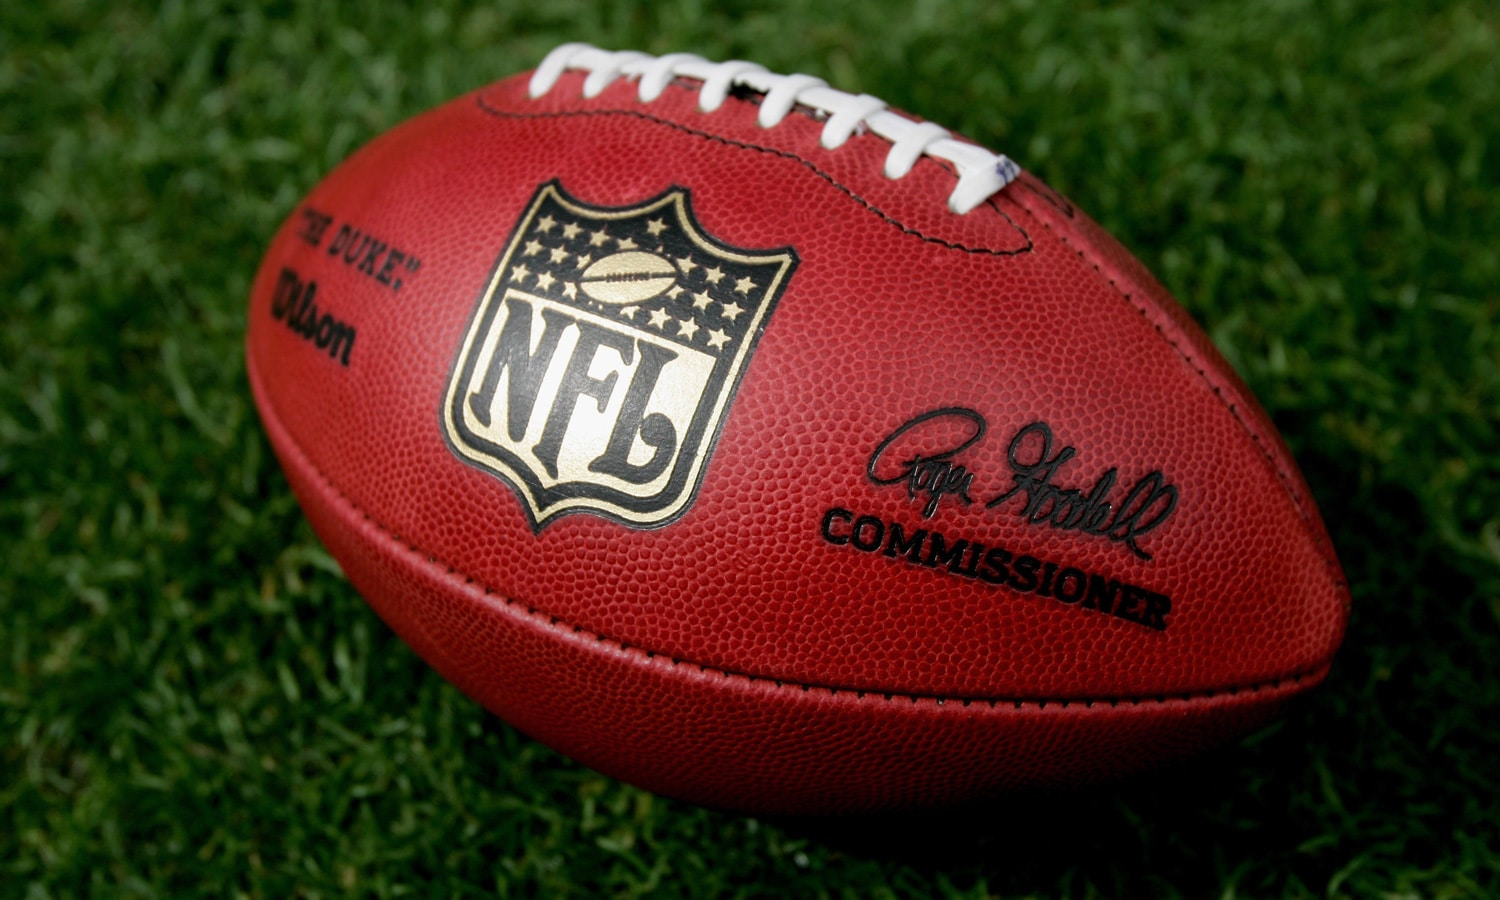 NFL To Consider Allowing Players To Use CBD next season